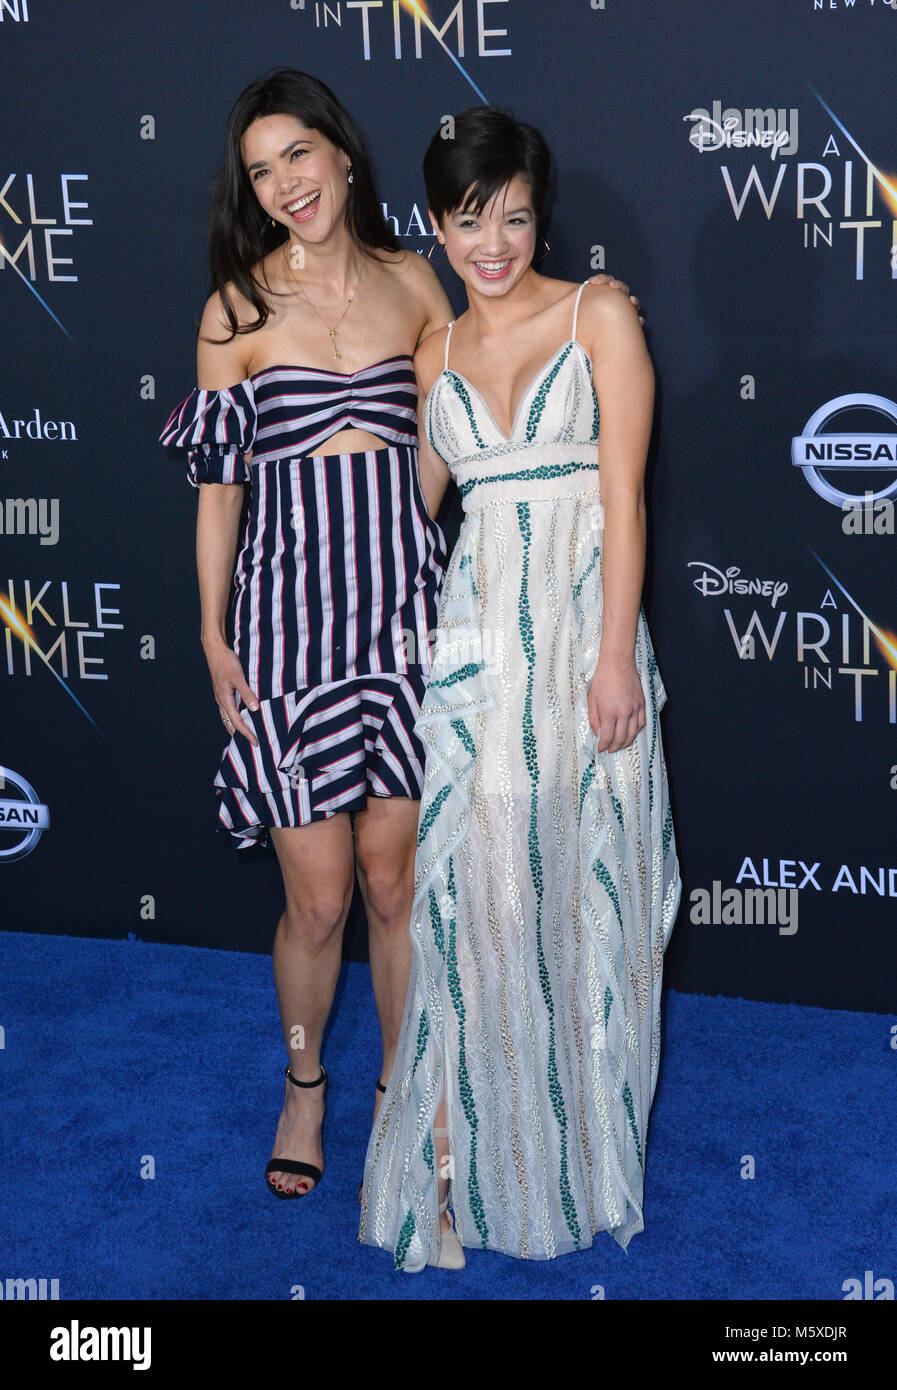 Los Angeles, USA. 26th Feb, 2018. Lilan Bowden & Peyton Elizabeth Lee at the premiere for 'A Wrinkle in - Stock Image